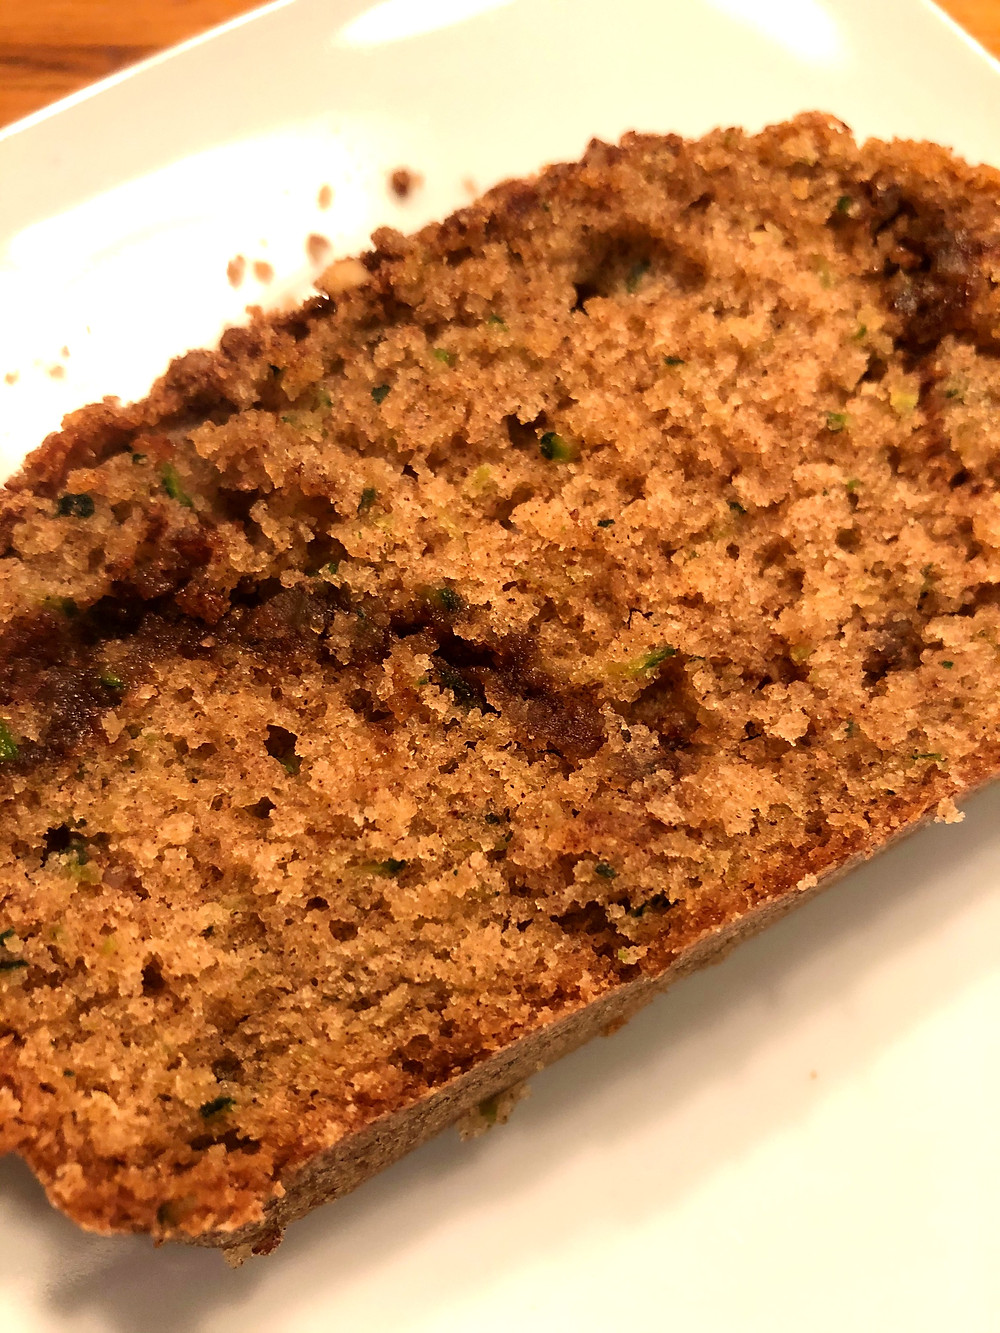 A close up of a slice of bread that has specks of spice and sugar as well as small slivers of green zucchini.